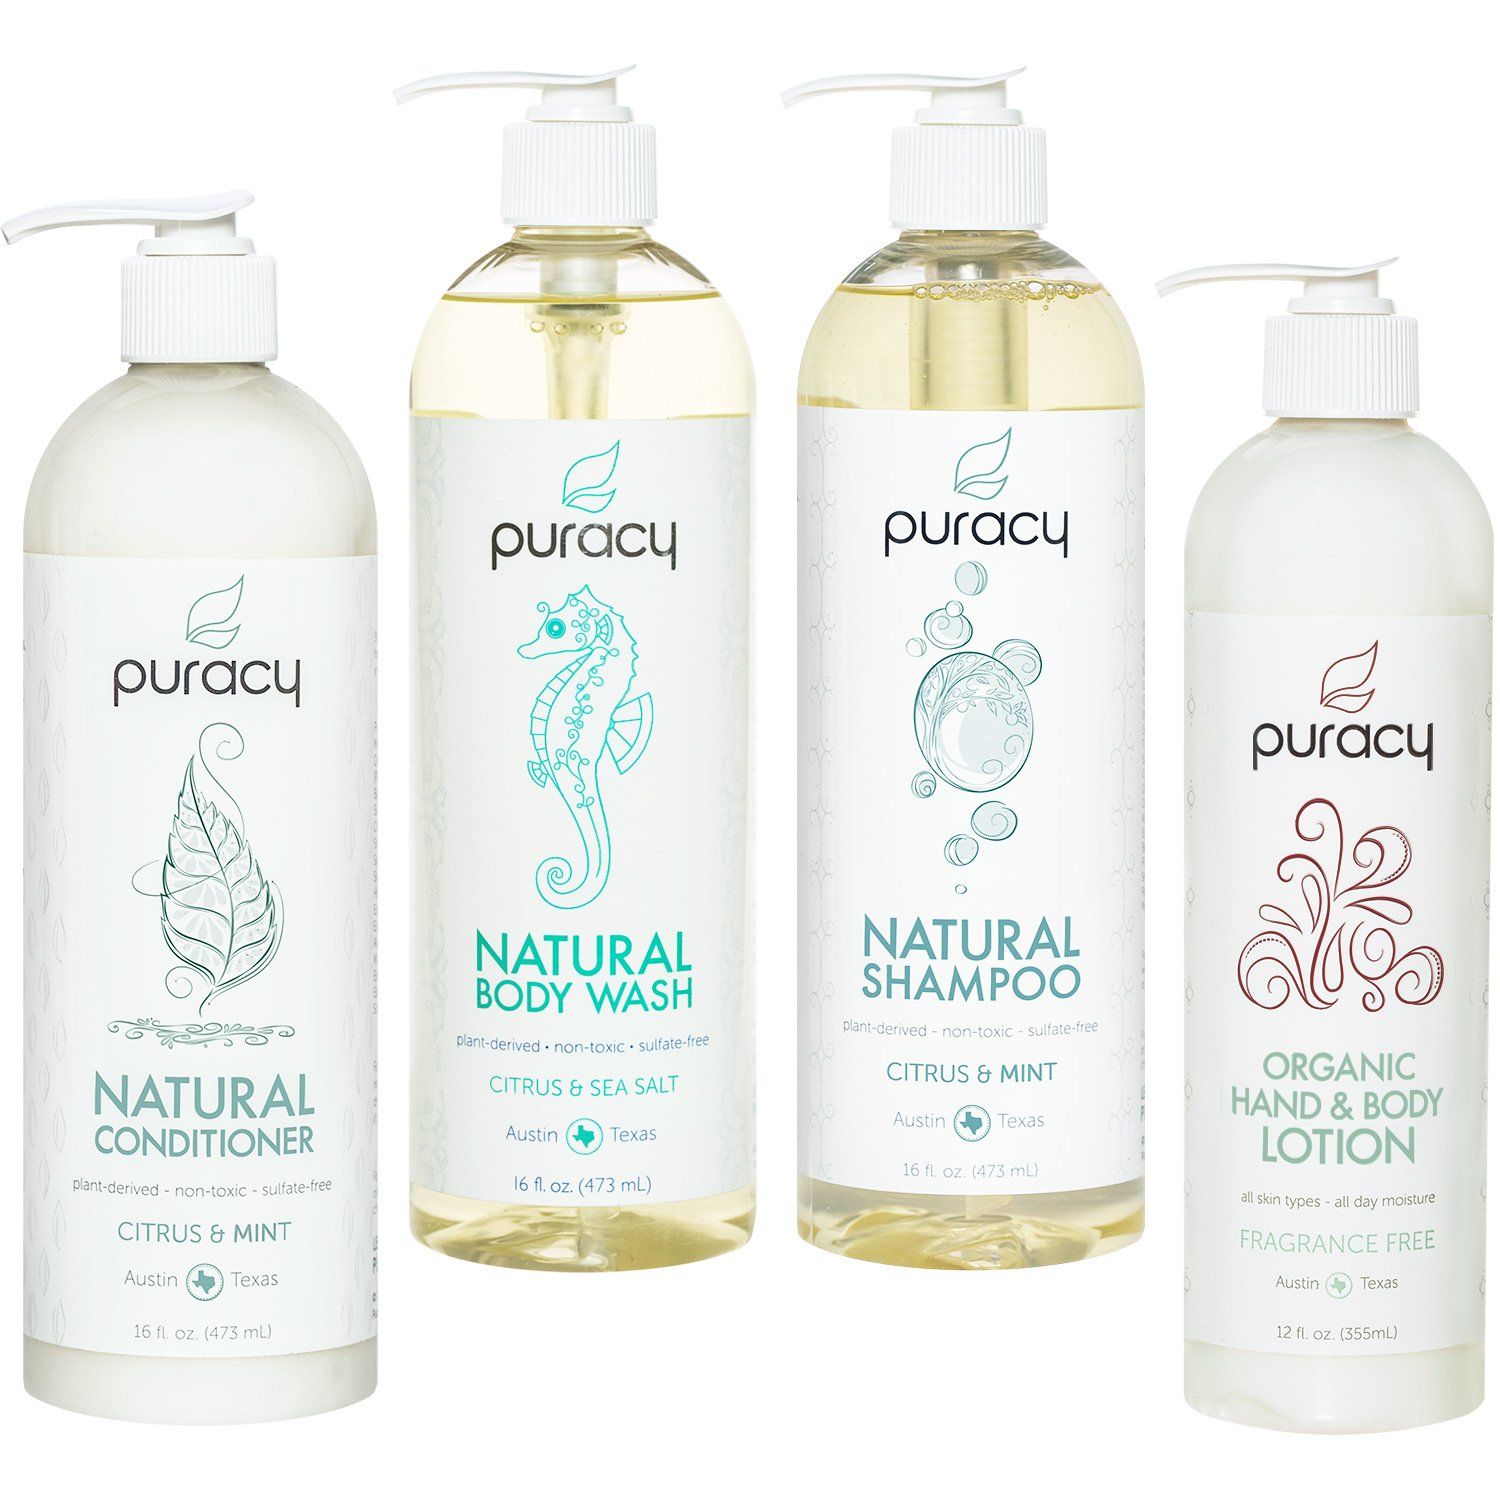 Puracy Organic Hair & Skin Care Set, Natural Body Wash, Shampoo, Conditioner, Lotion (4-Pack) by Puracy